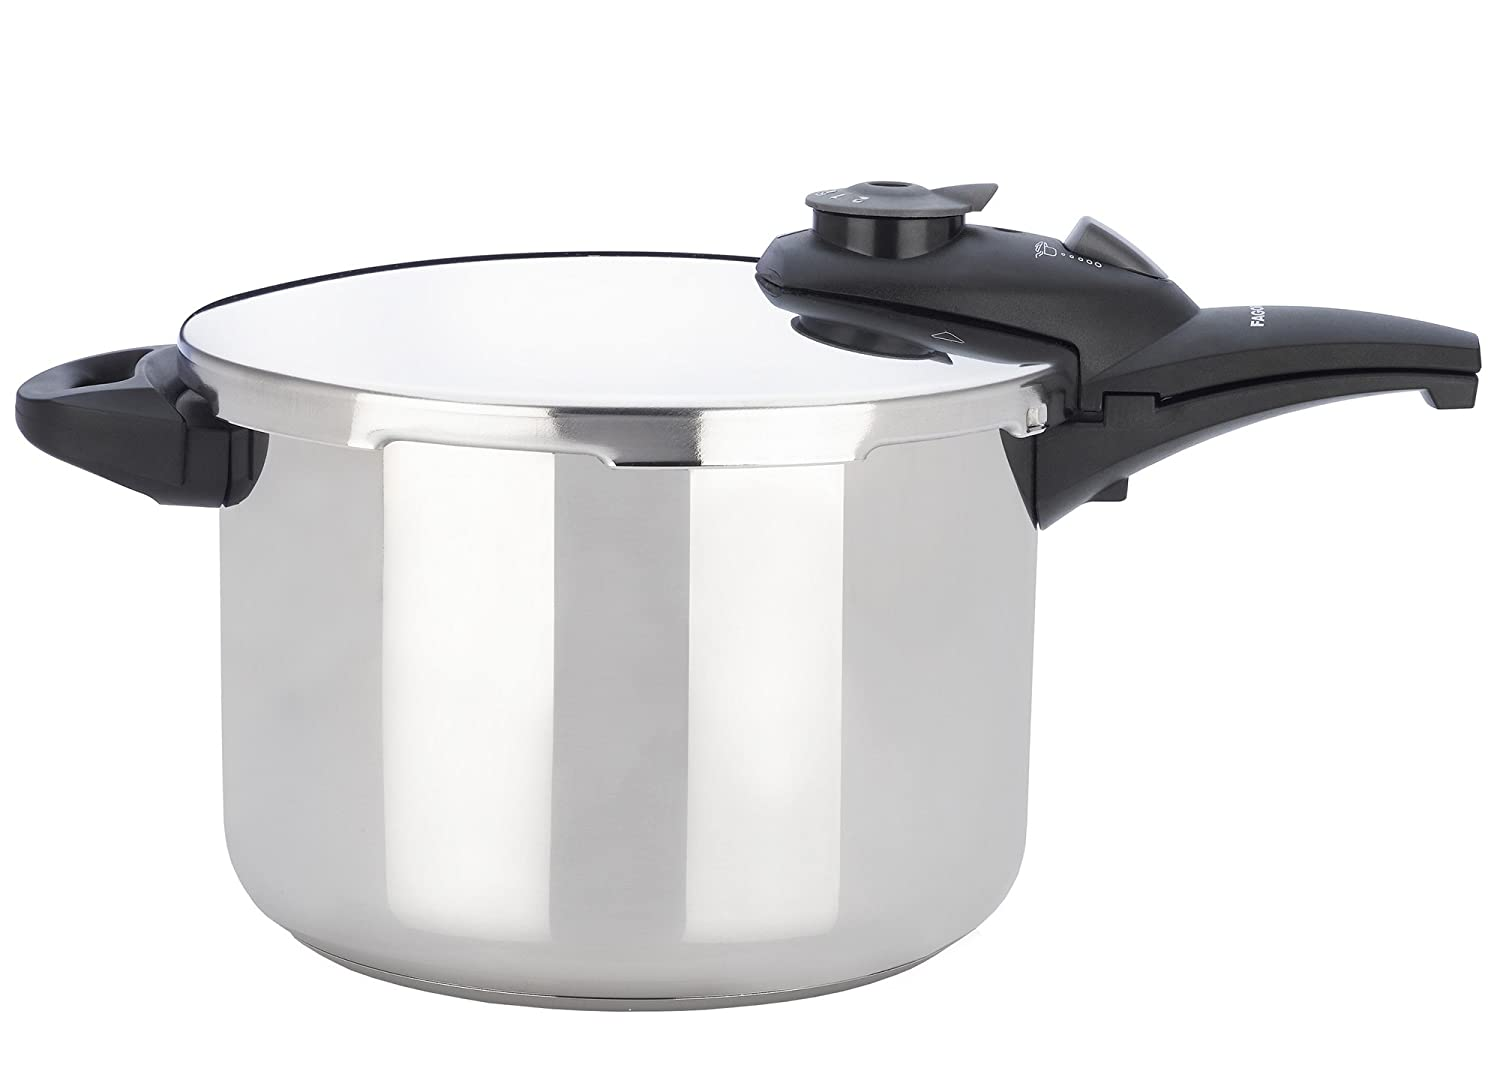 Buy fagor duo 8 quart pressure cooker from bed bath amp beyond - Amazon Com Fagor Innova Pressure Cooker 8 Quart Stainless Steel Kitchen Dining